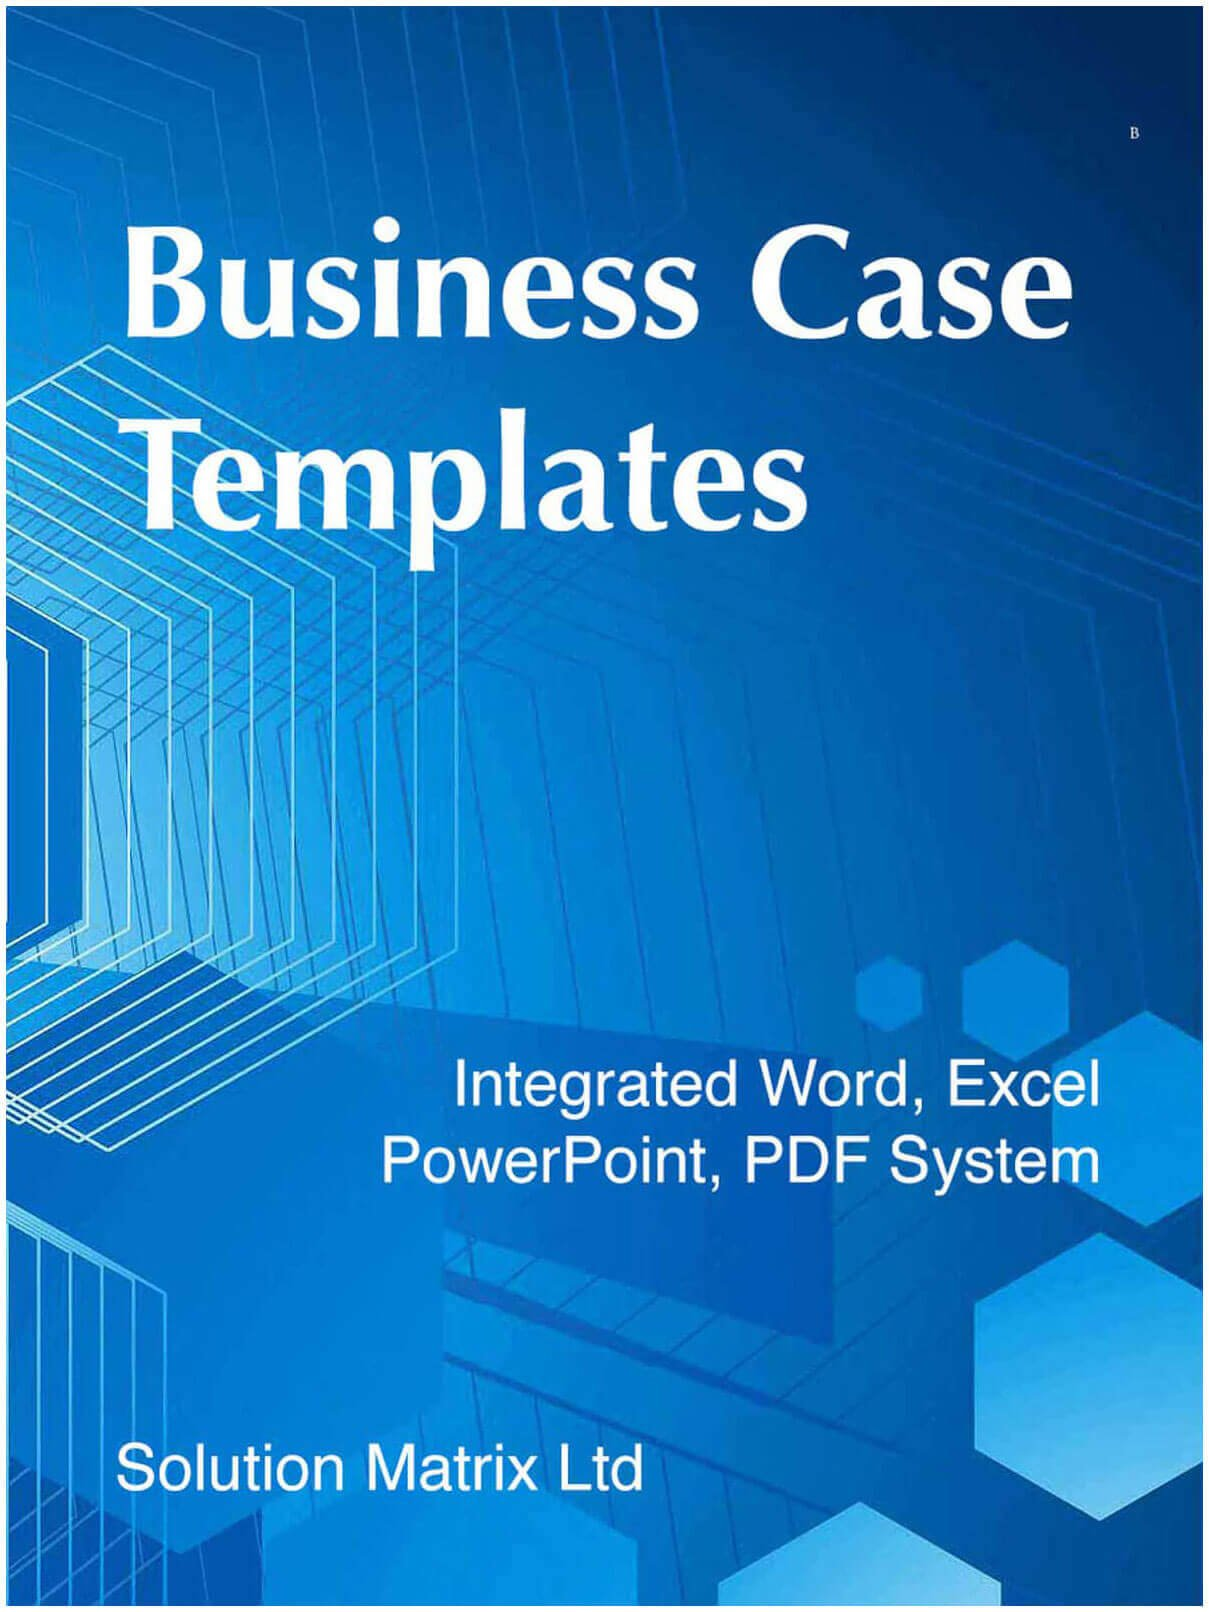 Buy the ebook Business Case Templates Package